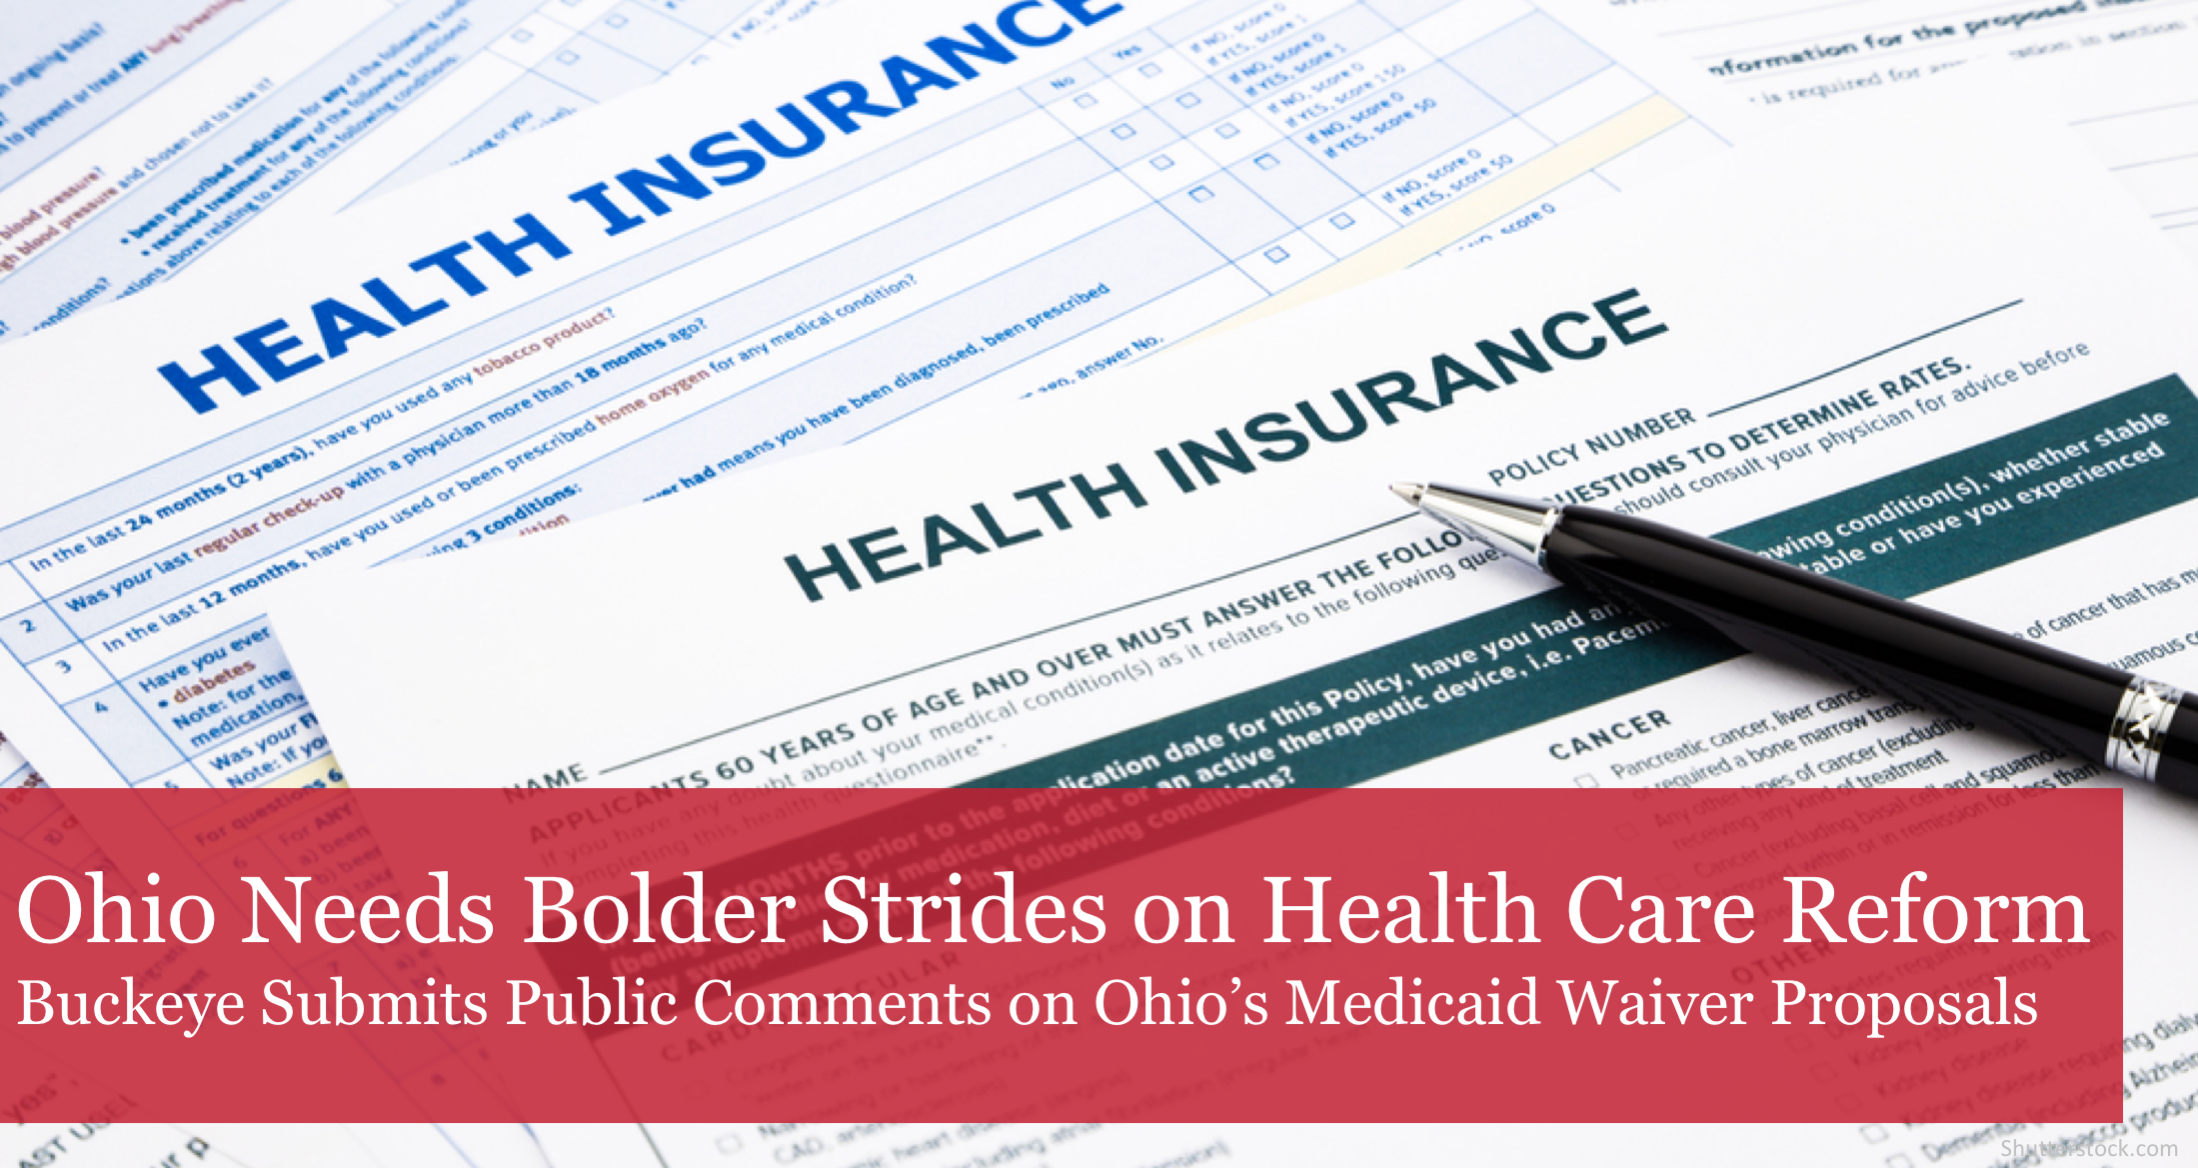 The Buckeye Institute: Policymakers Should Take Bolder Strides on Health Care Reforms that Country Can Follow